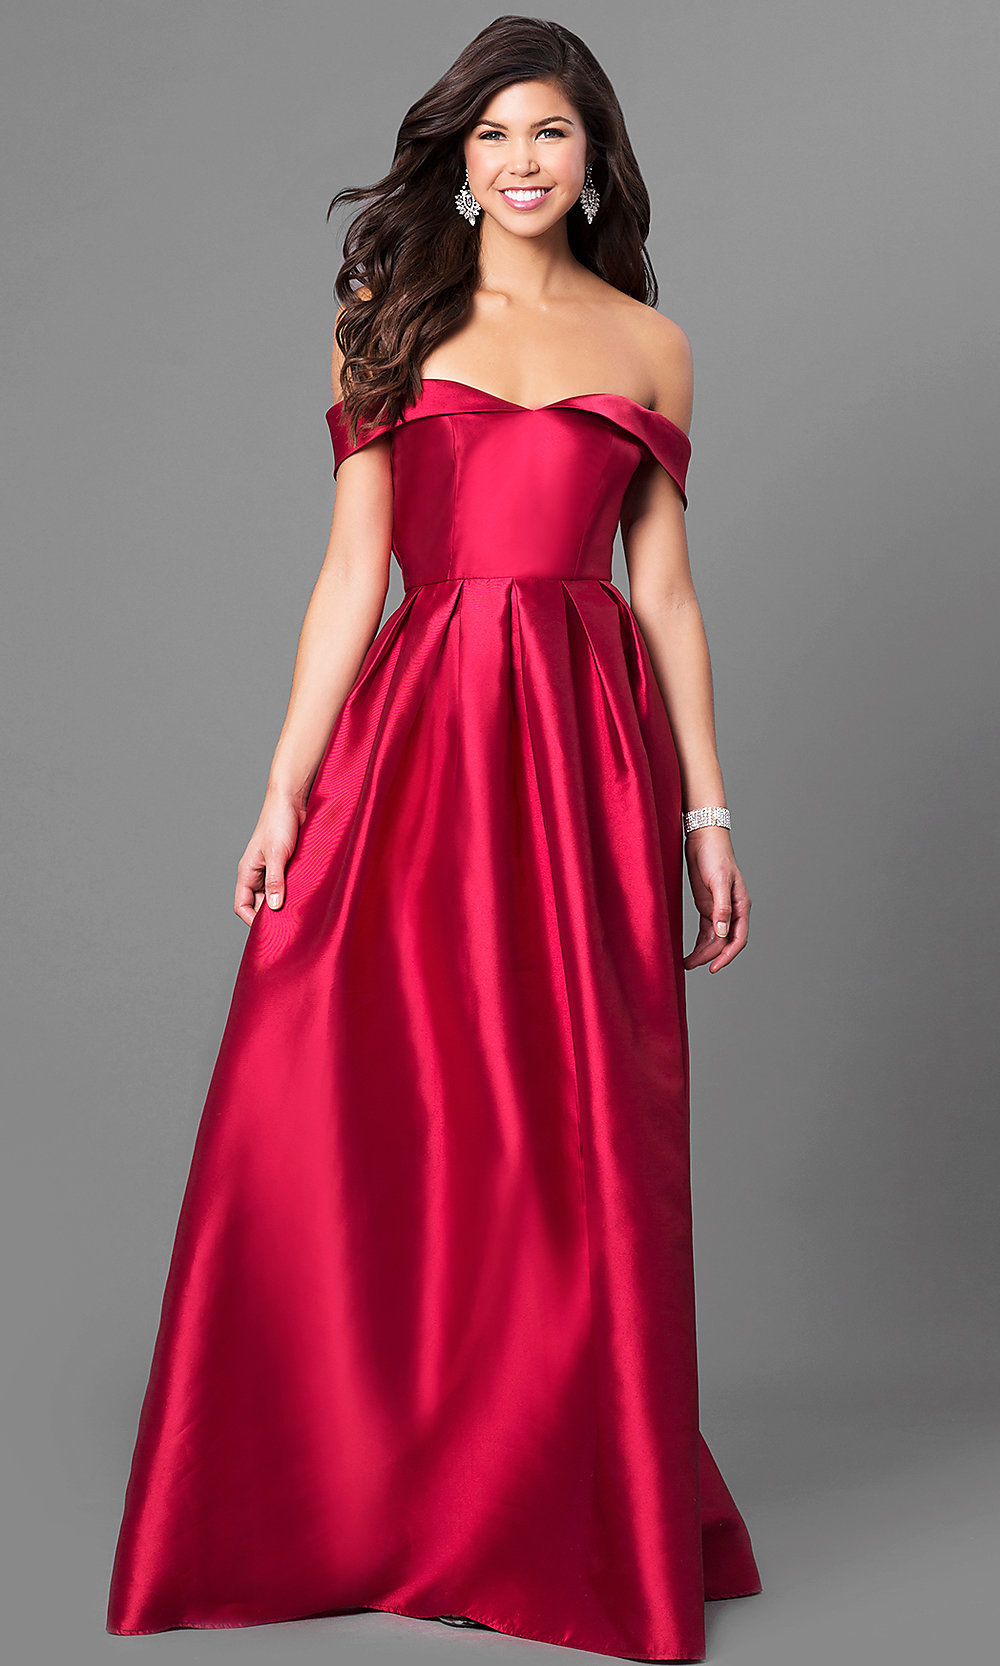 15d0419b9280 Image of off-the-shoulder long prom dress in satin. Style  LP. Tap to expand